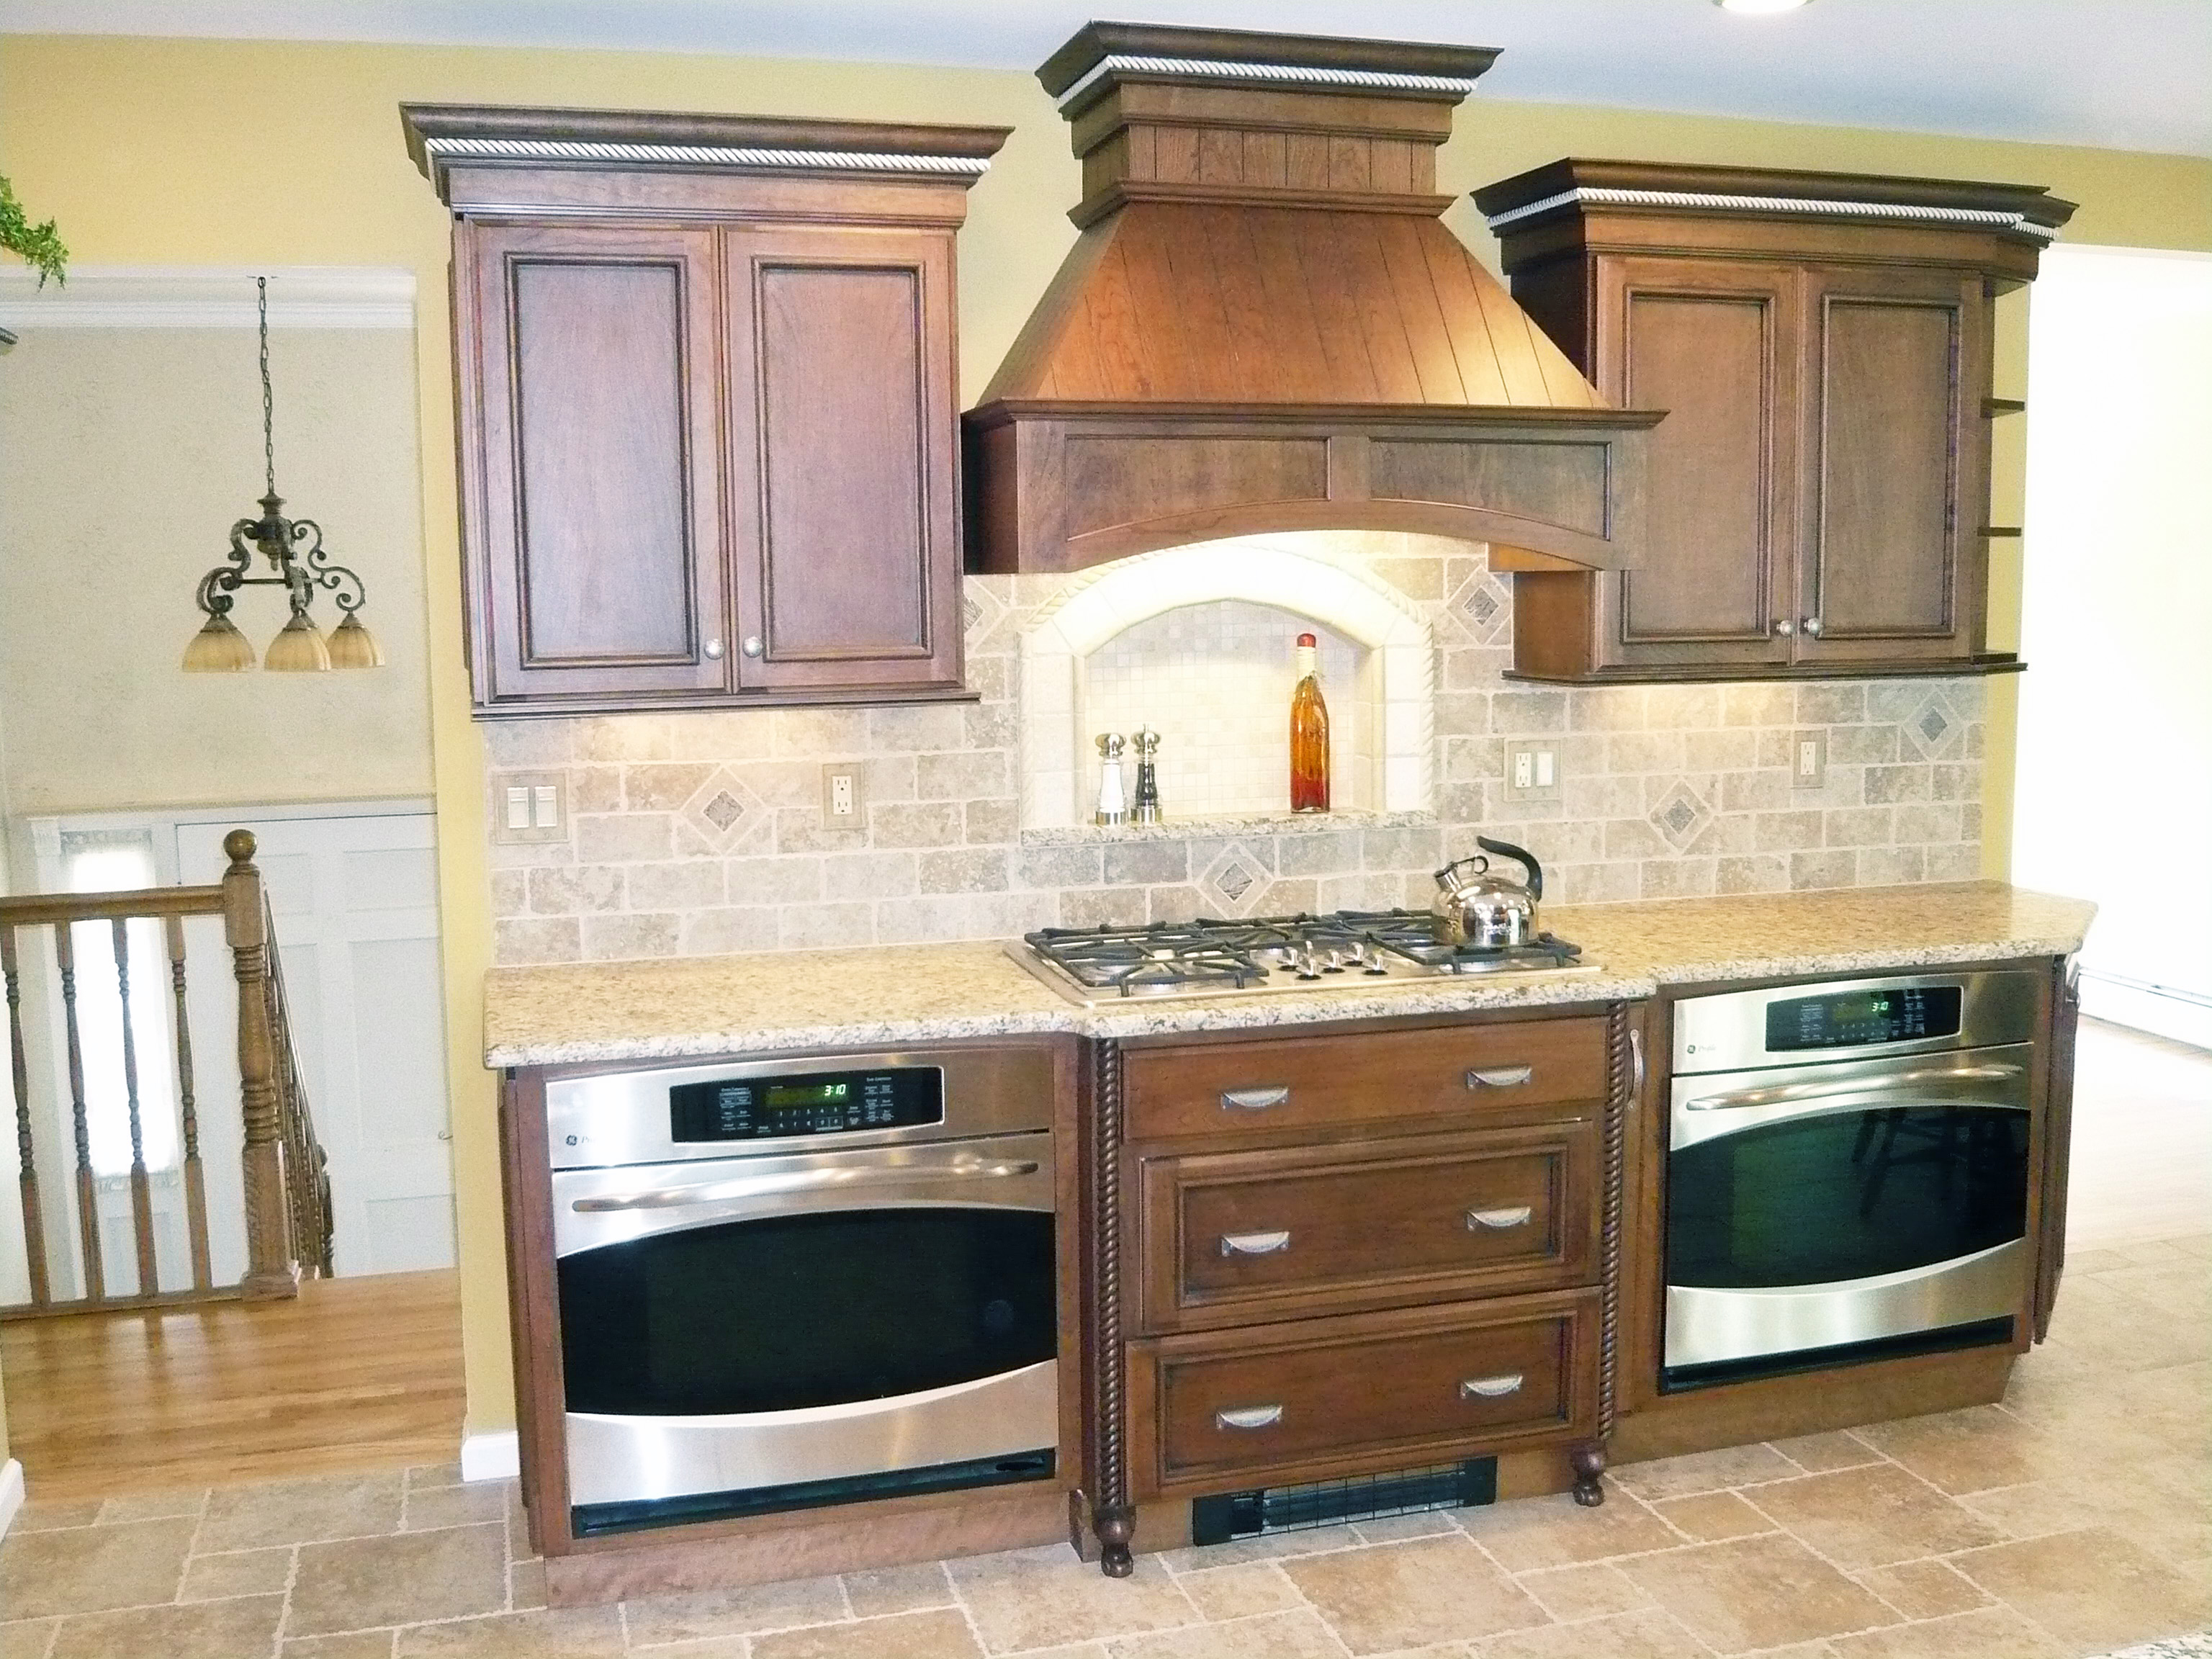 Countertop Double Oven : Double Ovens without Sacrificing Countertop space Kitchen Design ...